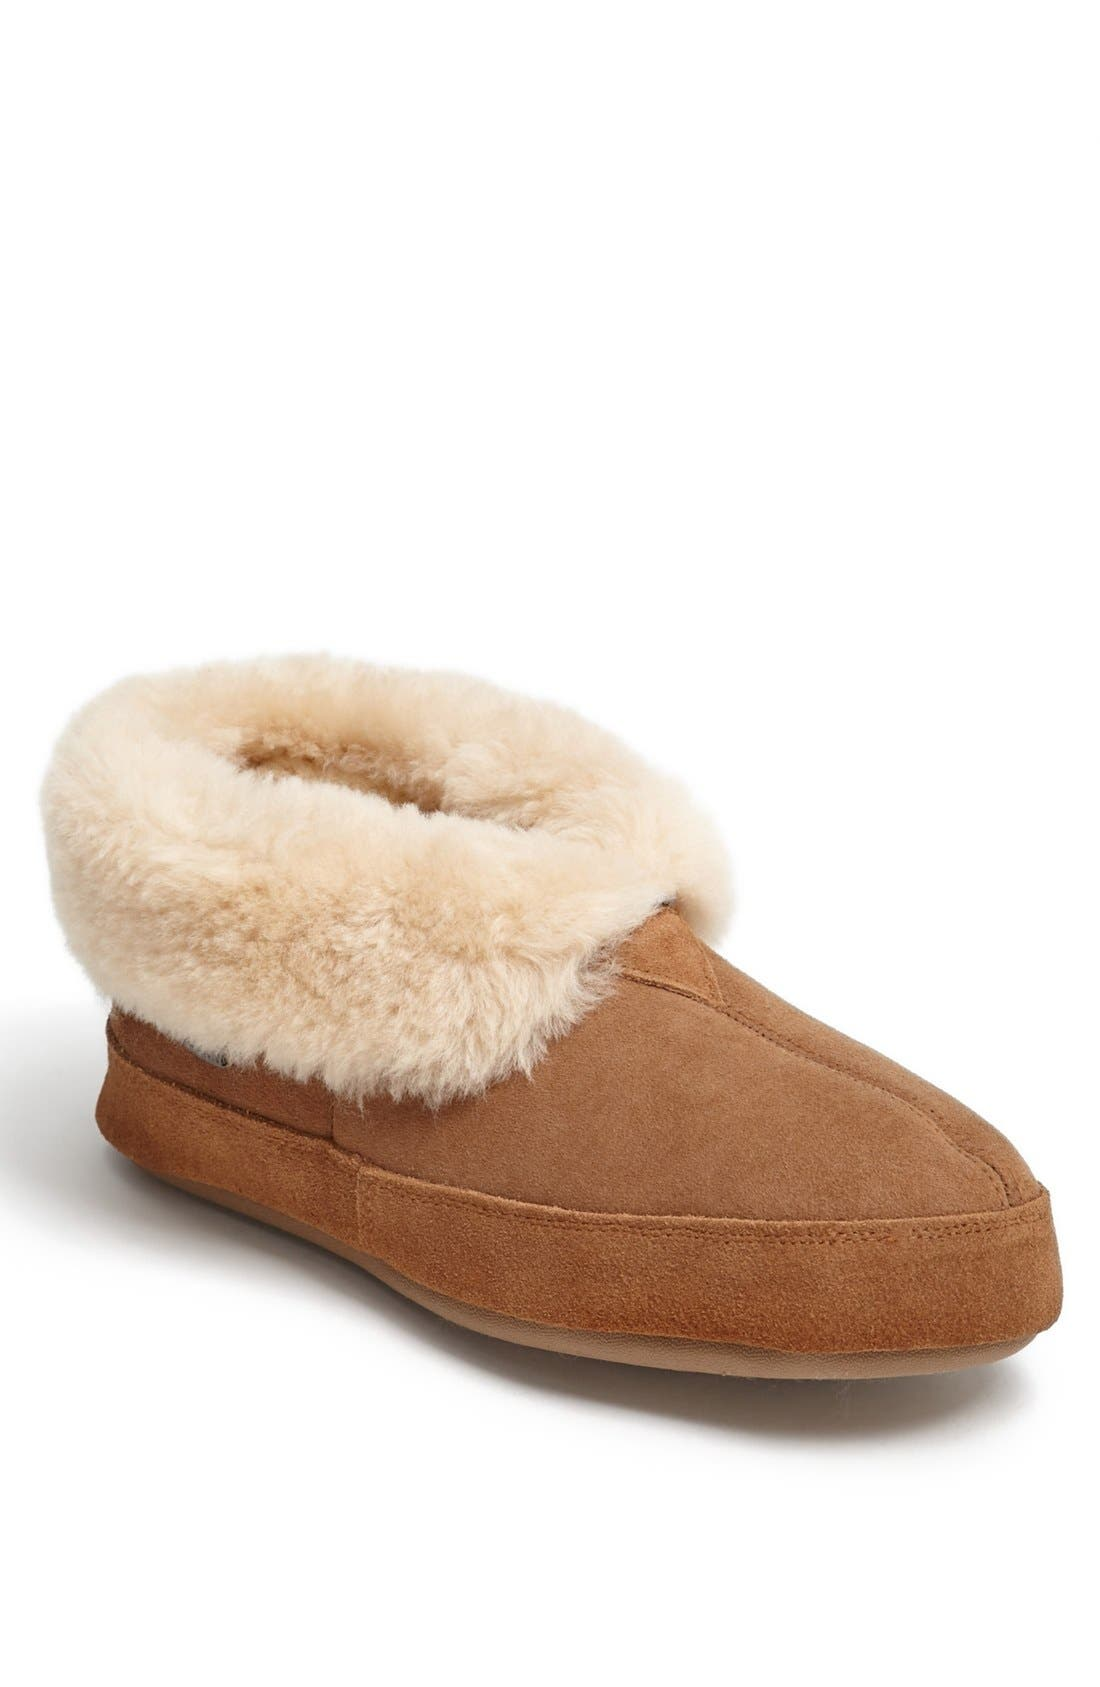 Genuine Sheepskin Slipper,                         Main,                         color, WALNUT